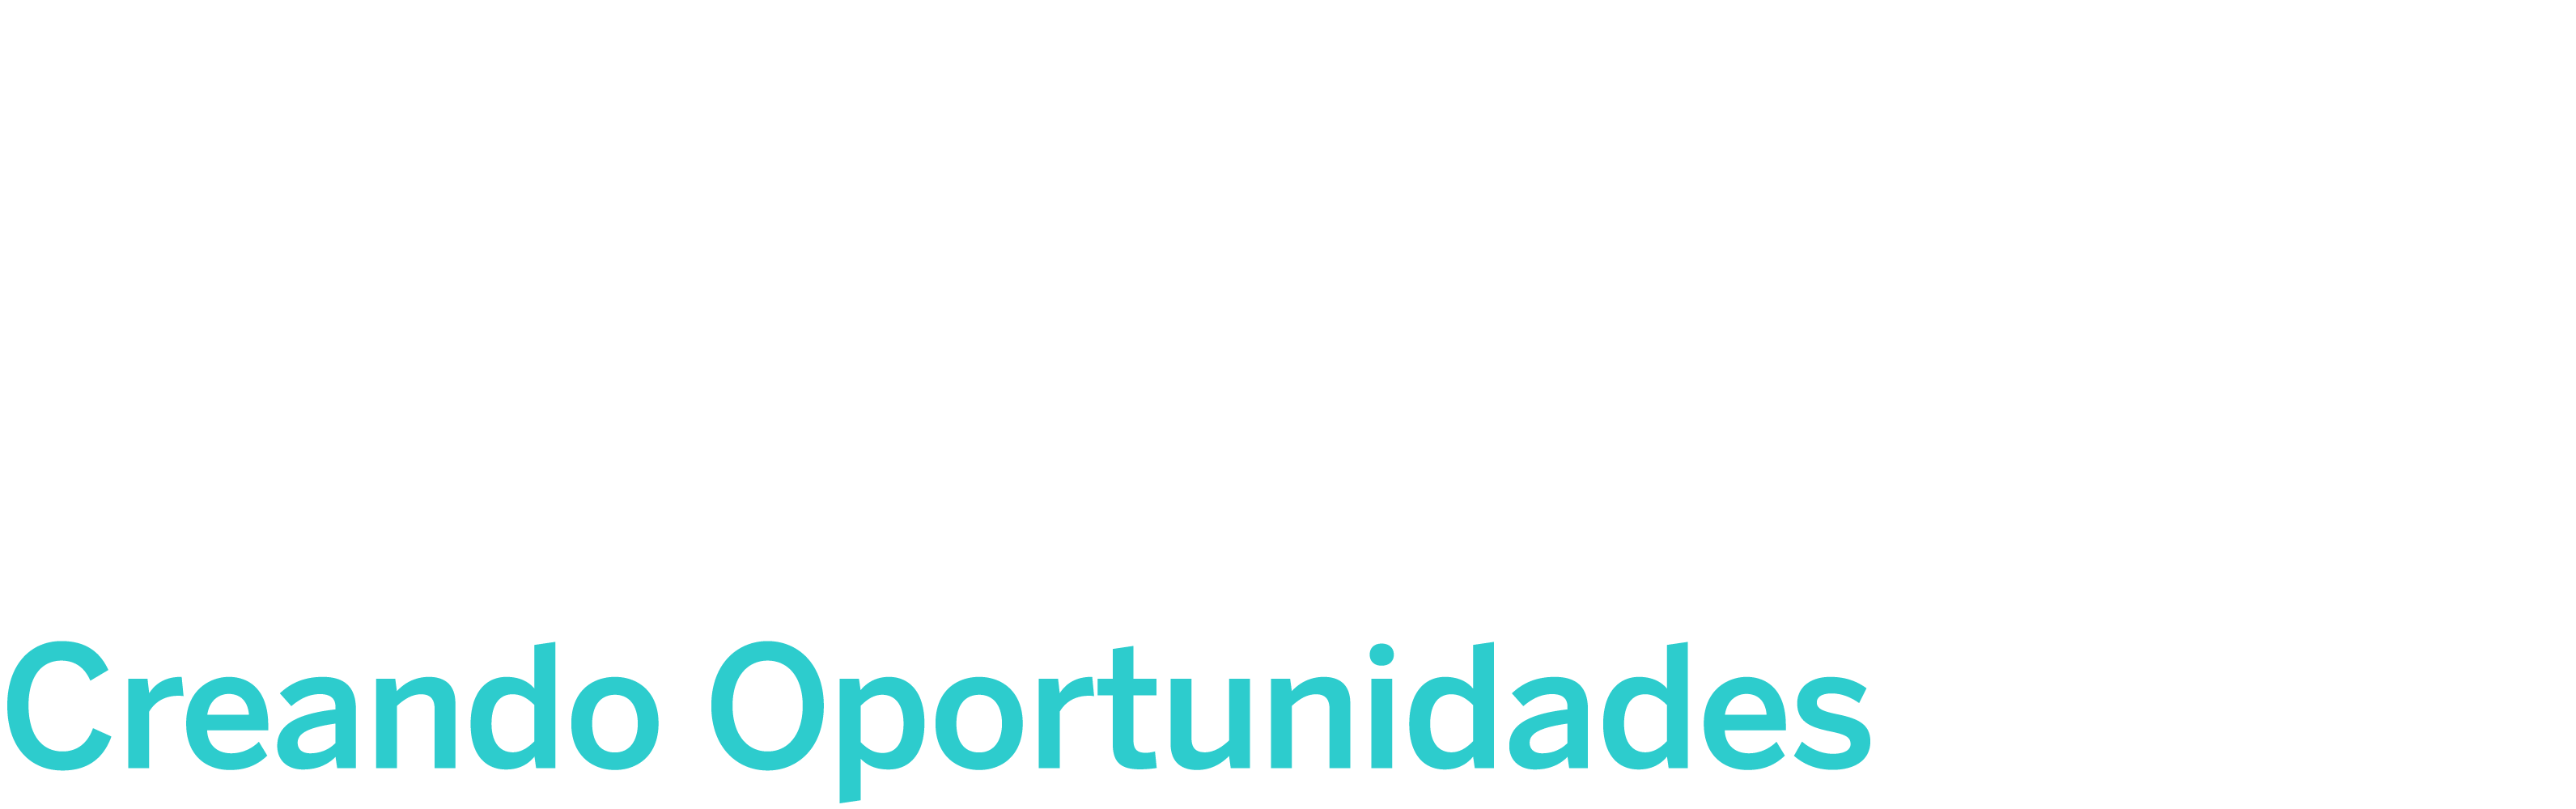 logo BBVA